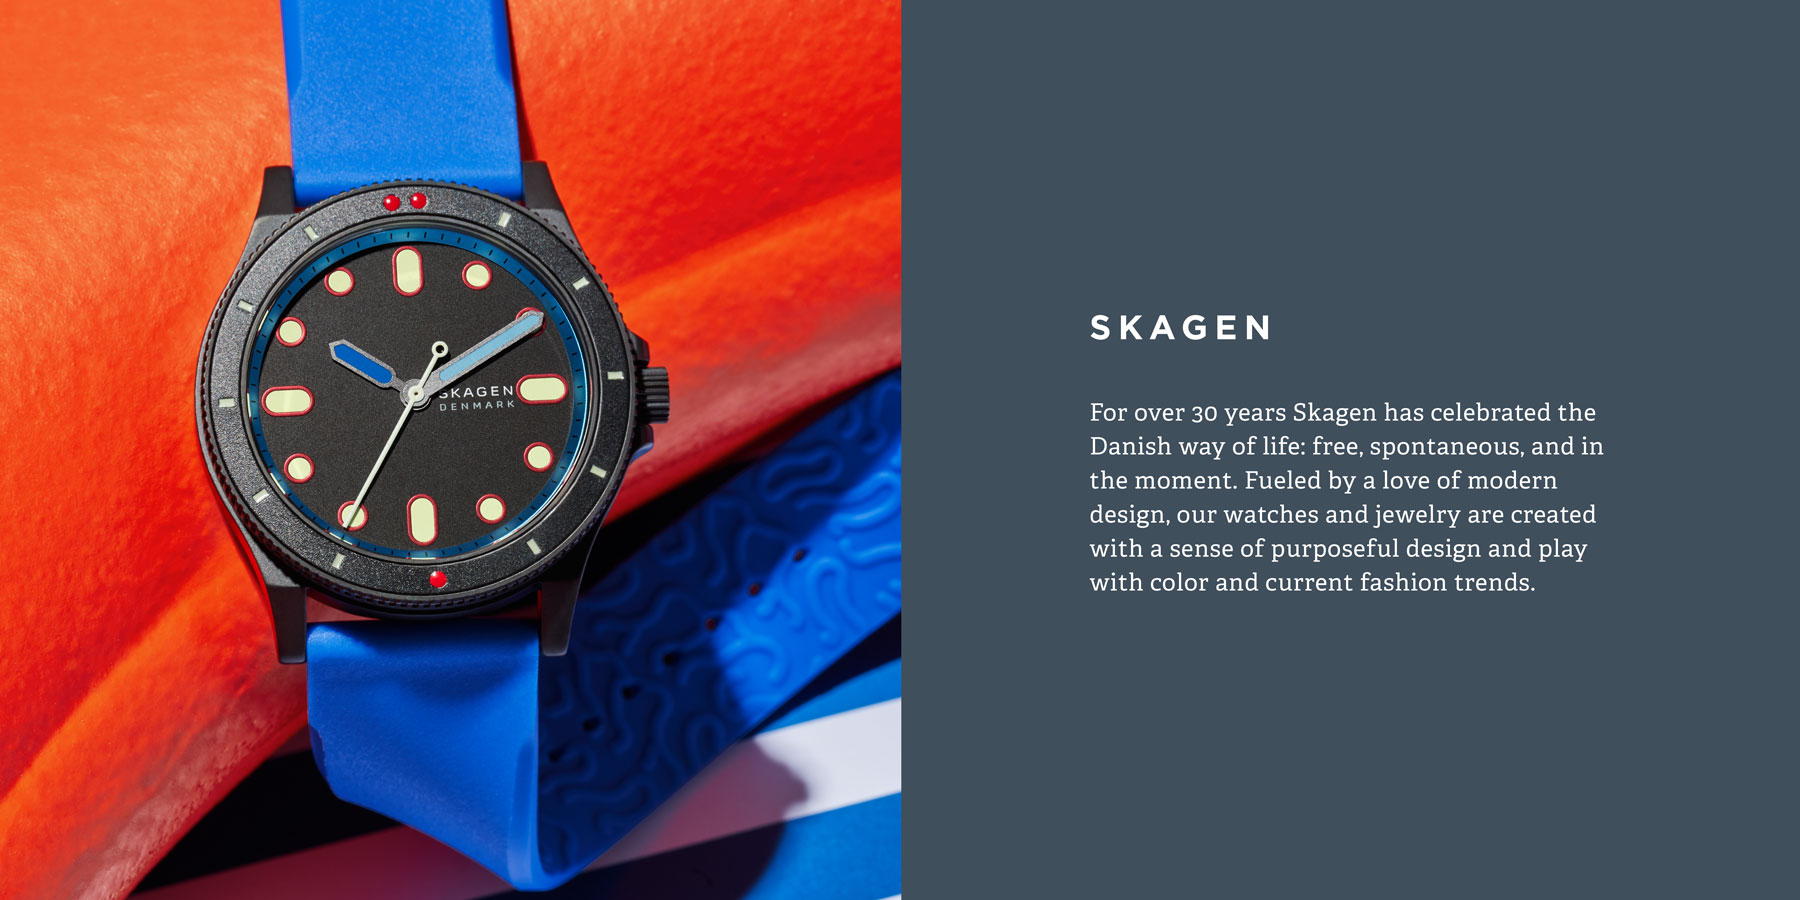 For over 30 years Skagen has celebrated the Danish way of life: free, spontaneous, and in the moment.